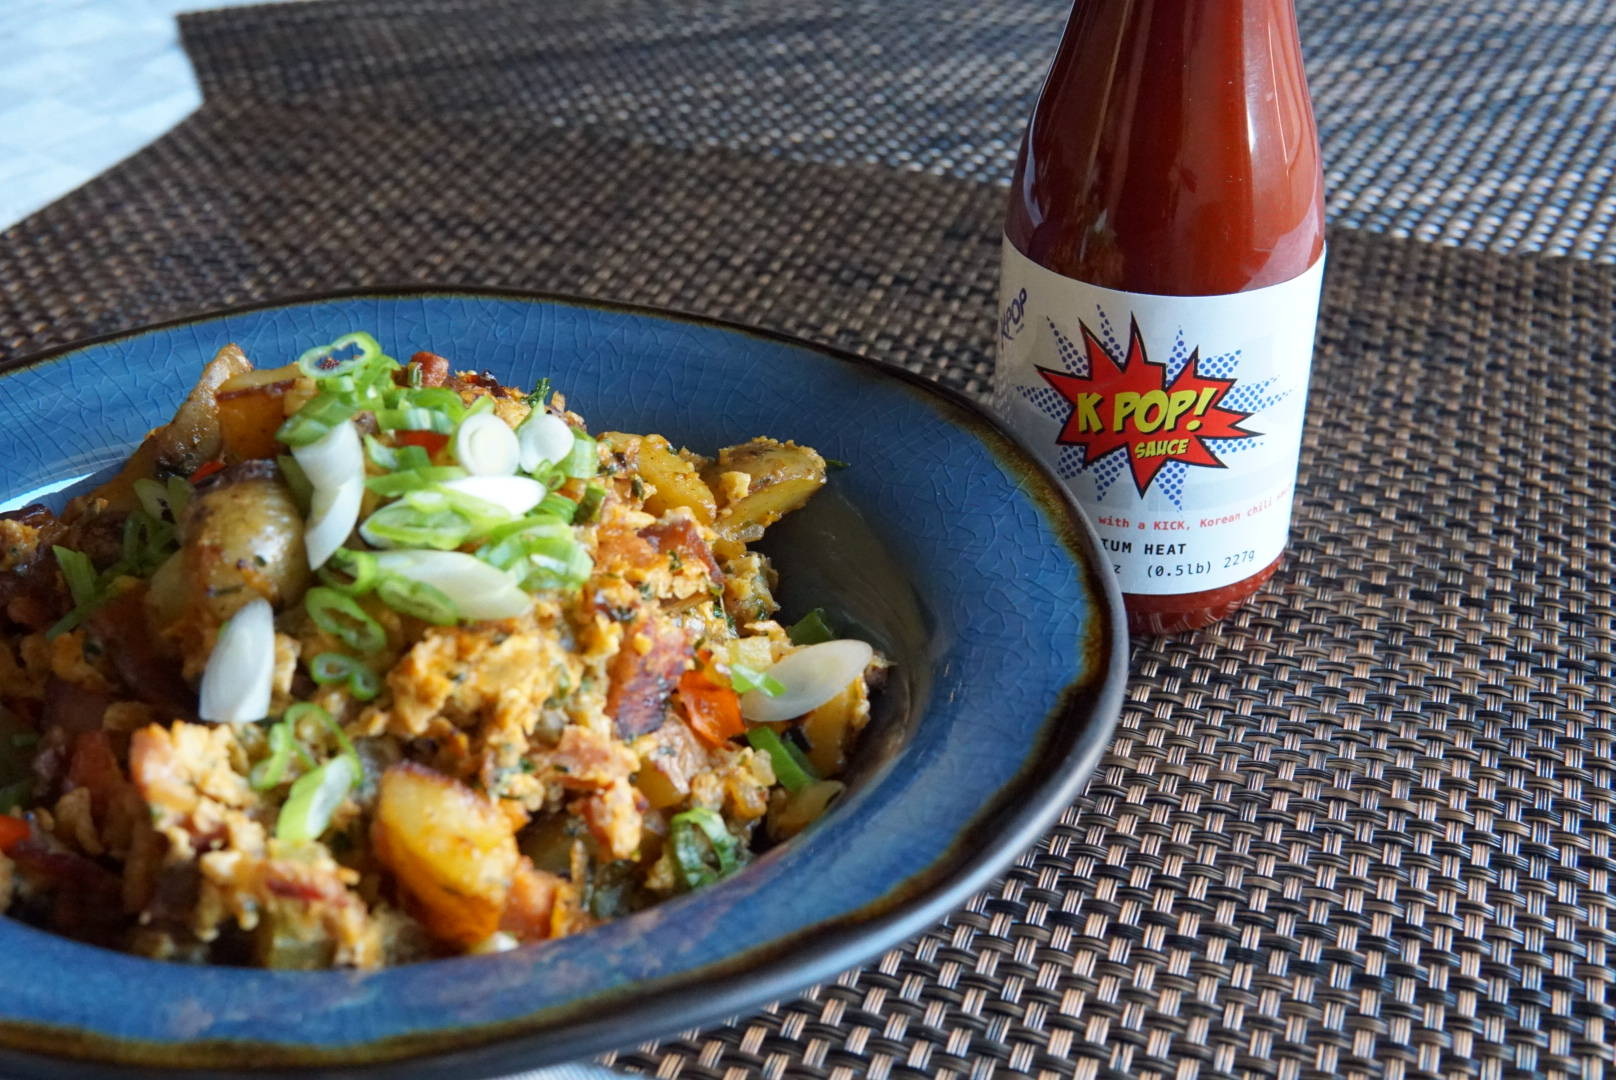 Breakfast skillet with potatoes and kpop sauce